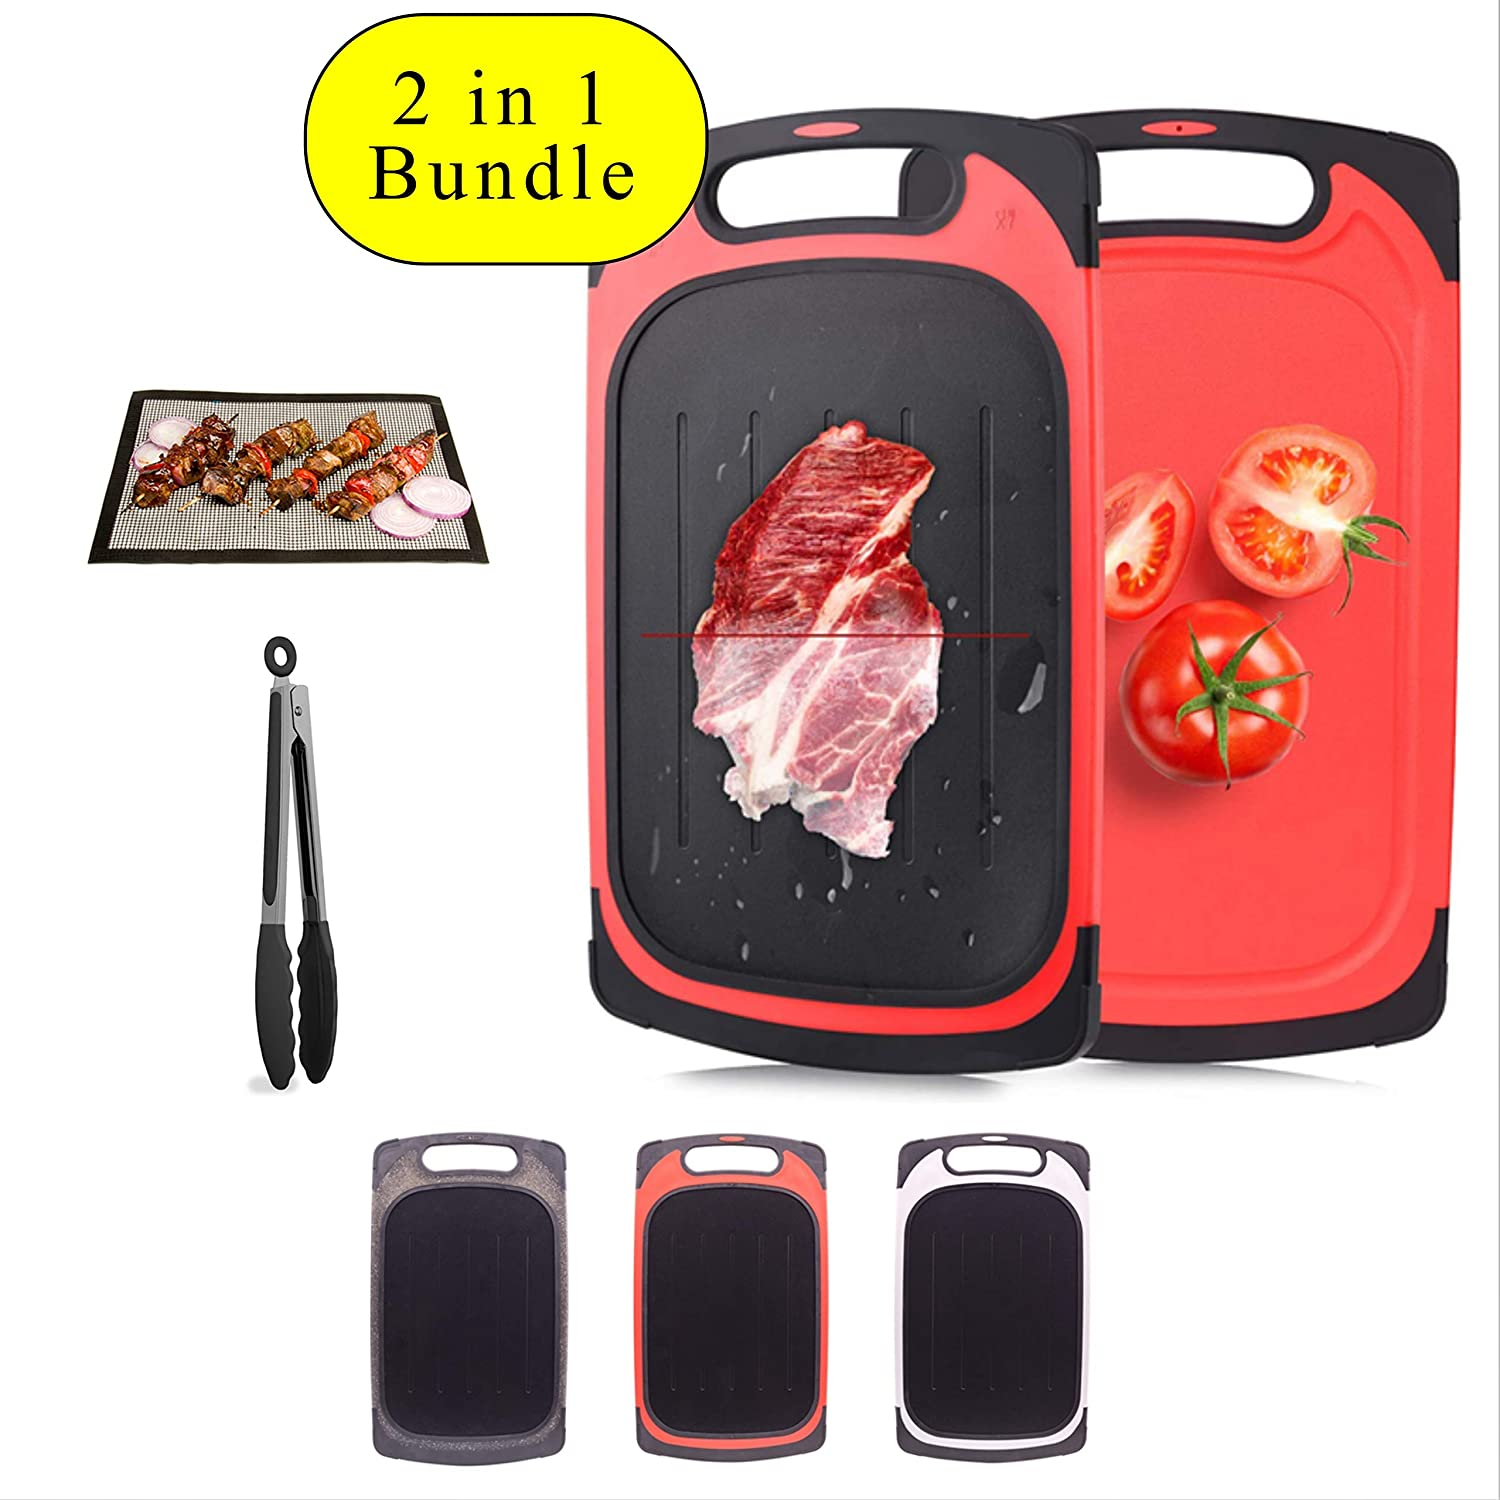 2 In 1 Four Piece Bundle Set MultiFunction Fast Meat Thawing Defrosting Tray/Plate & Cutting/Chopping Board Set Includes Grill Mat,Tongs. Defrost Steak,Chicken,Pork,Fish,Vegetables & Chop Up Food GREY